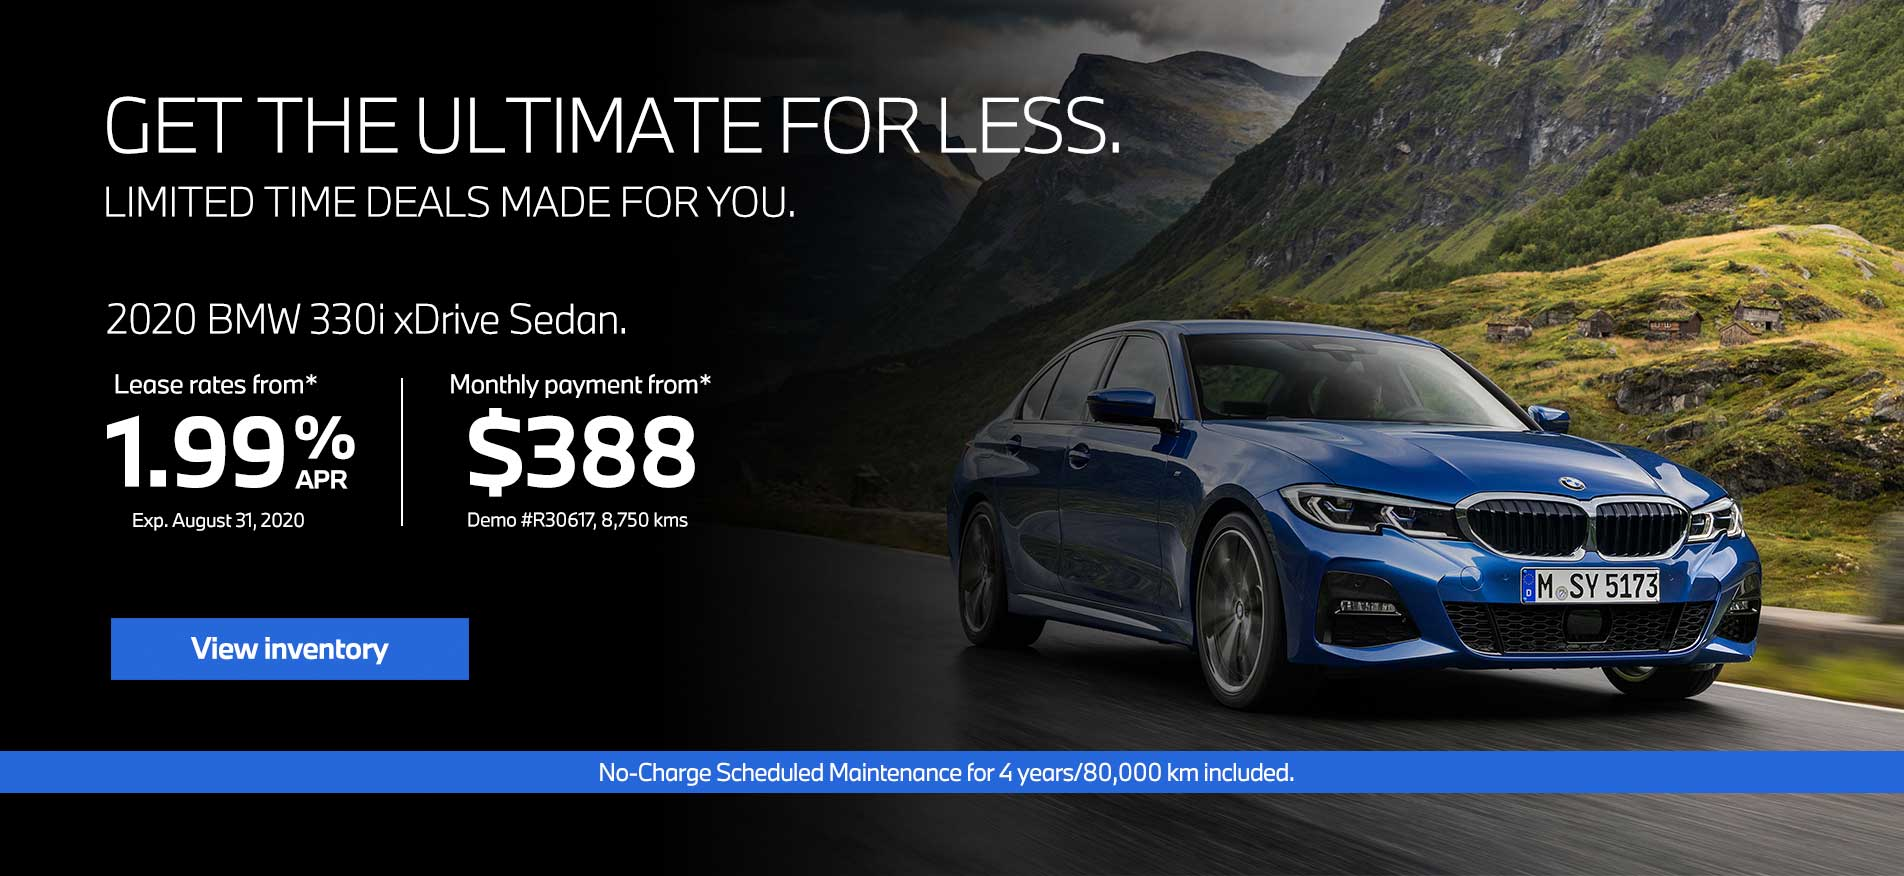 Auto West BMW August Offers 3 Series